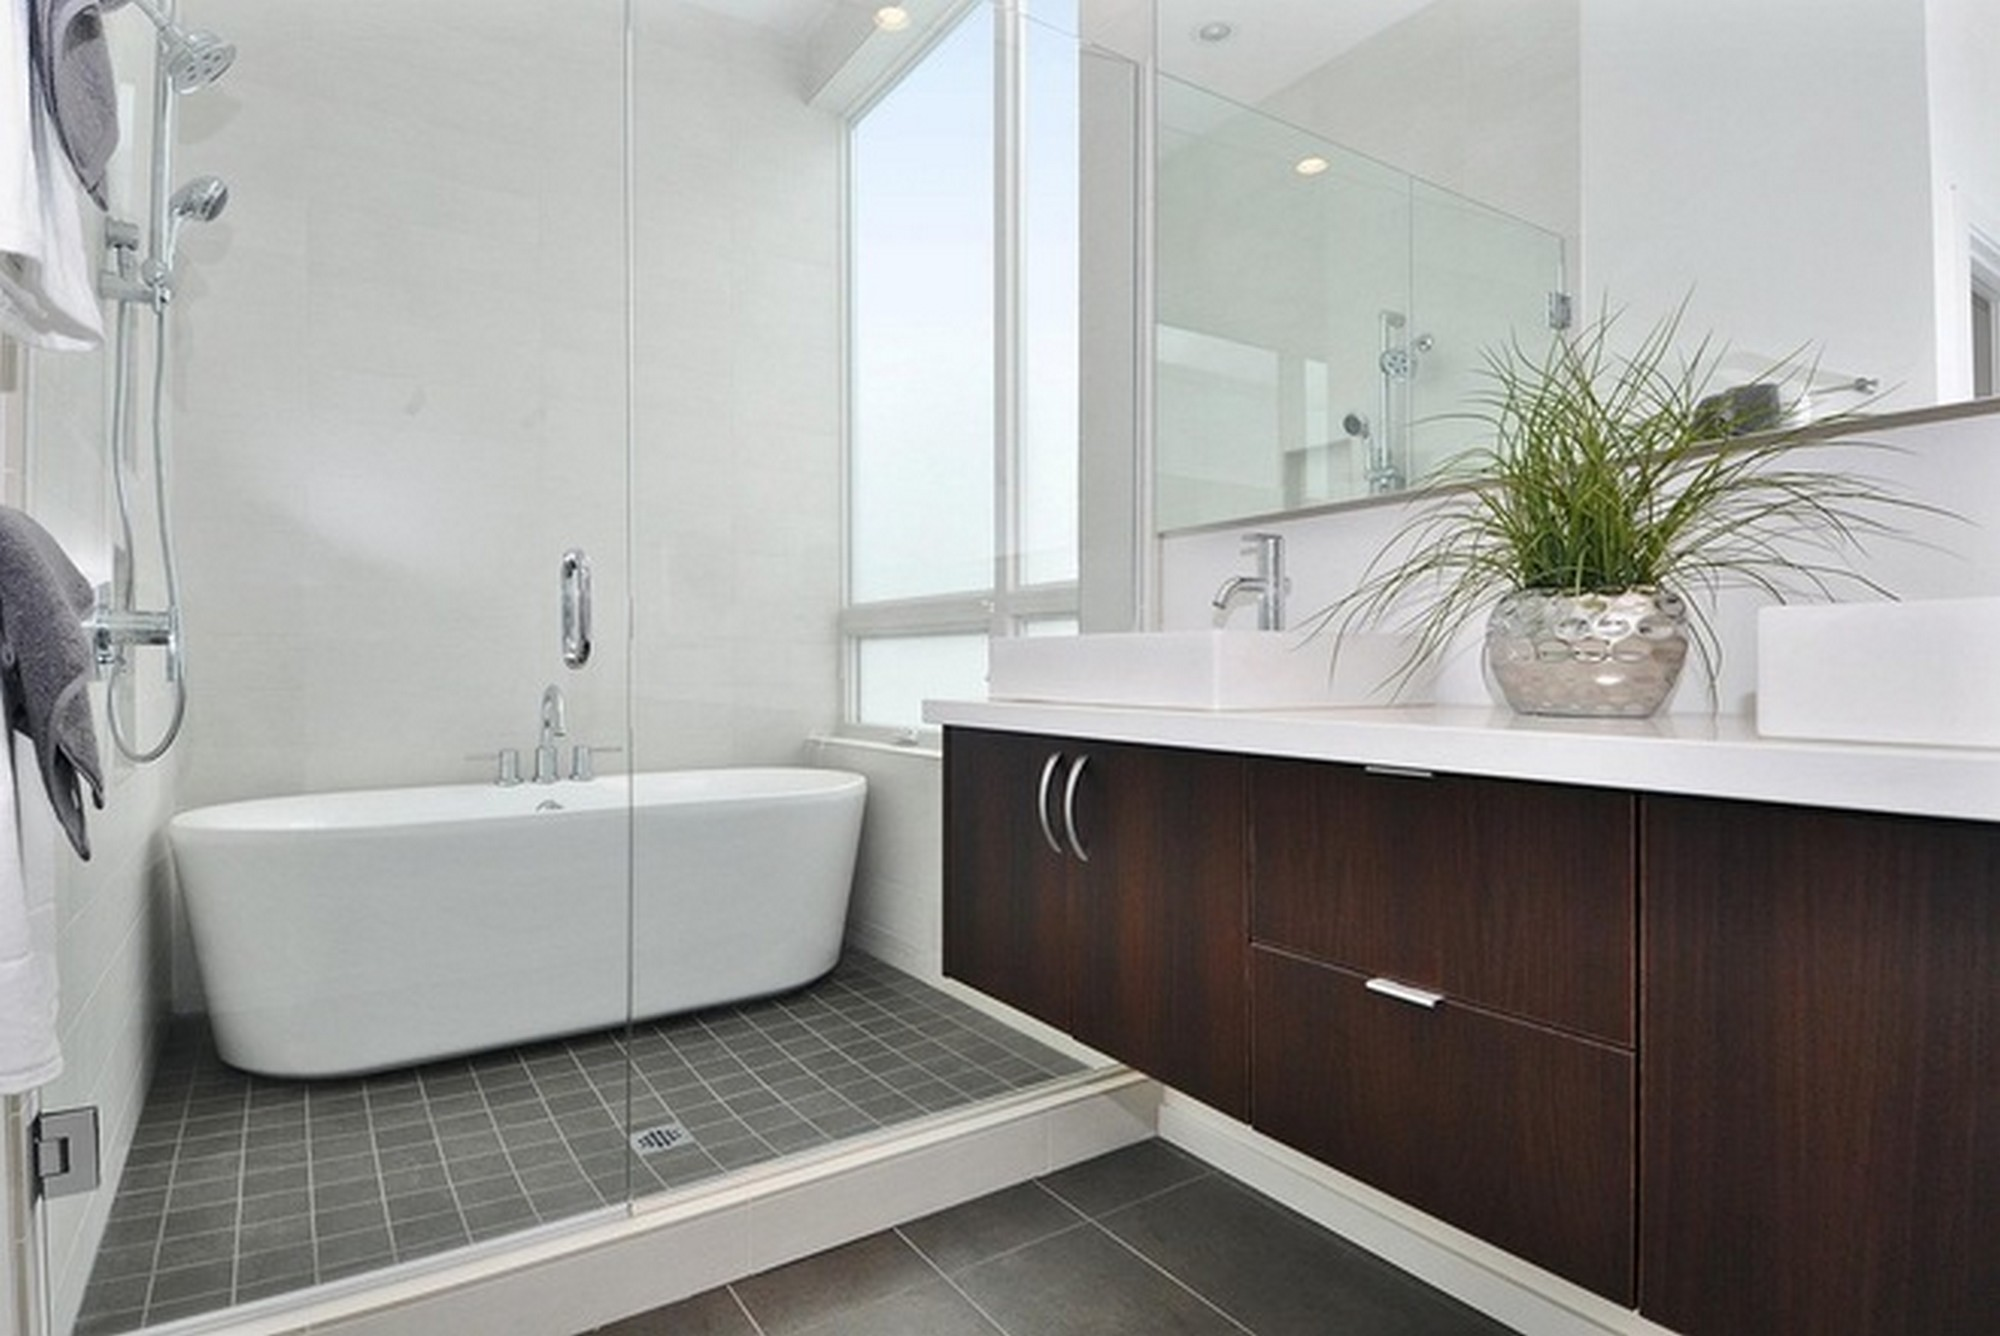 Wide Walk in Shower Ideas with White Bathtub and Glass Door for Small Bathroom